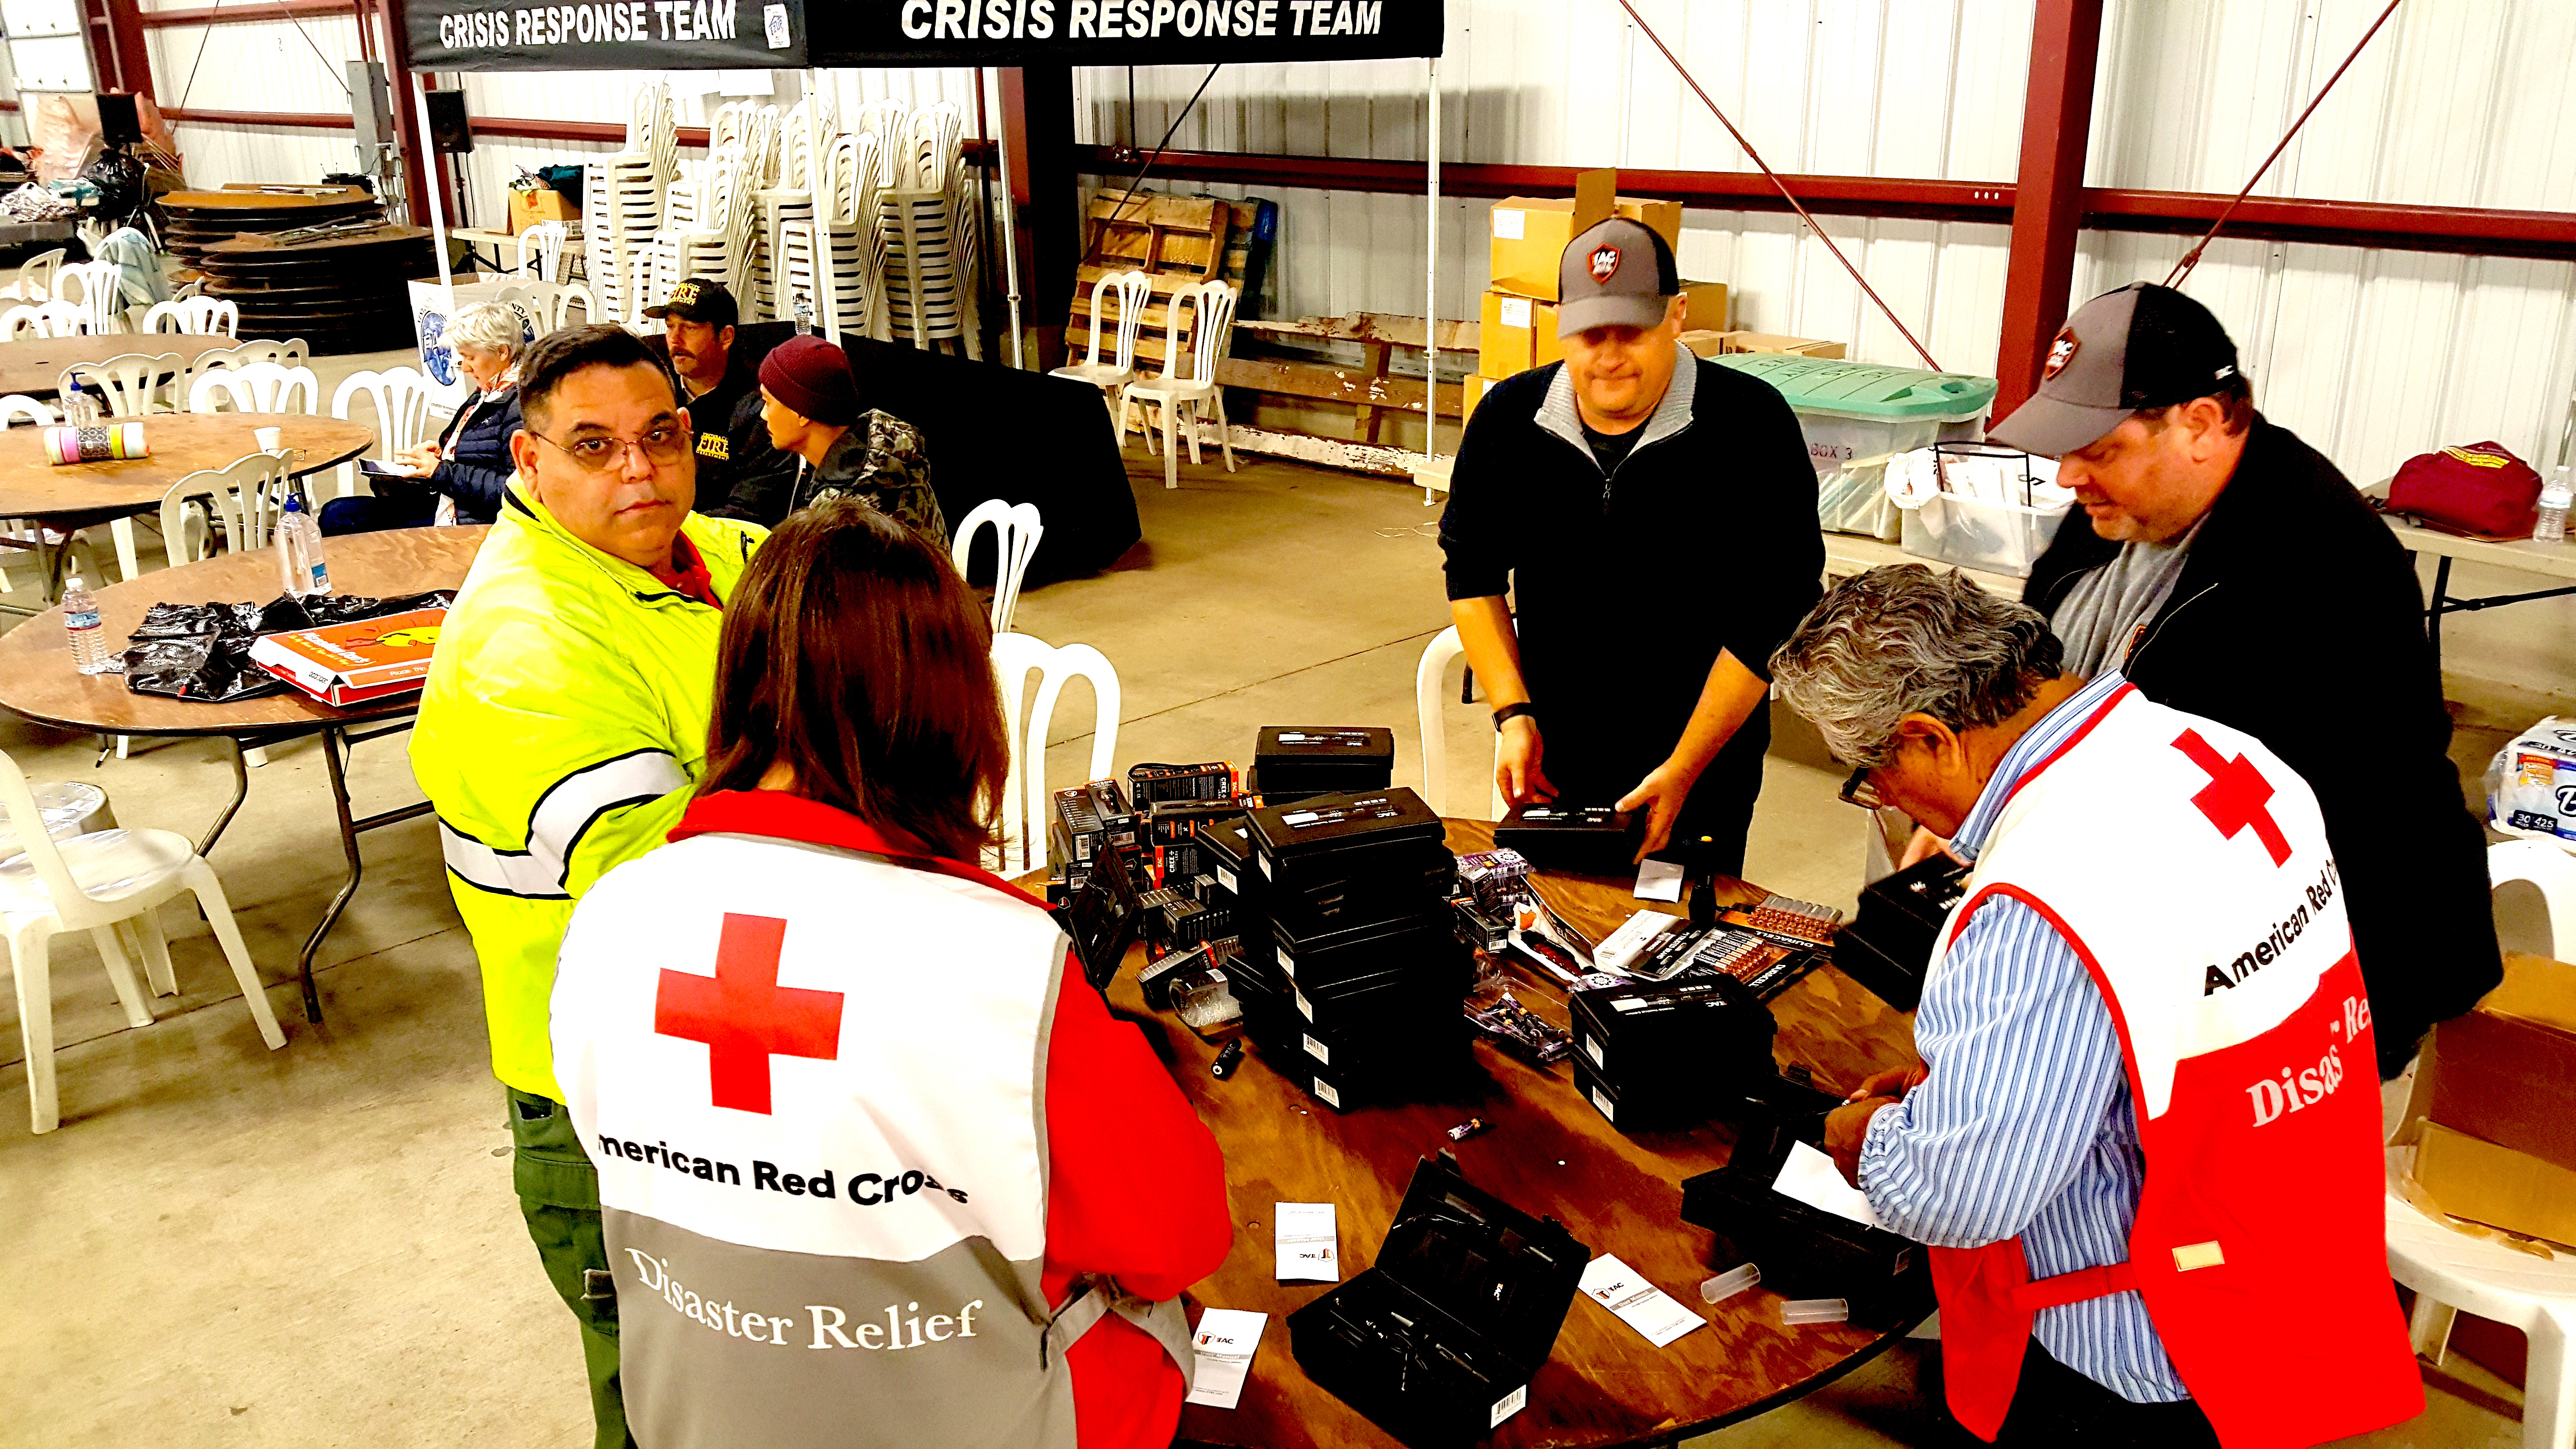 RED CROSS and 1TAC RESPONSE TEAM